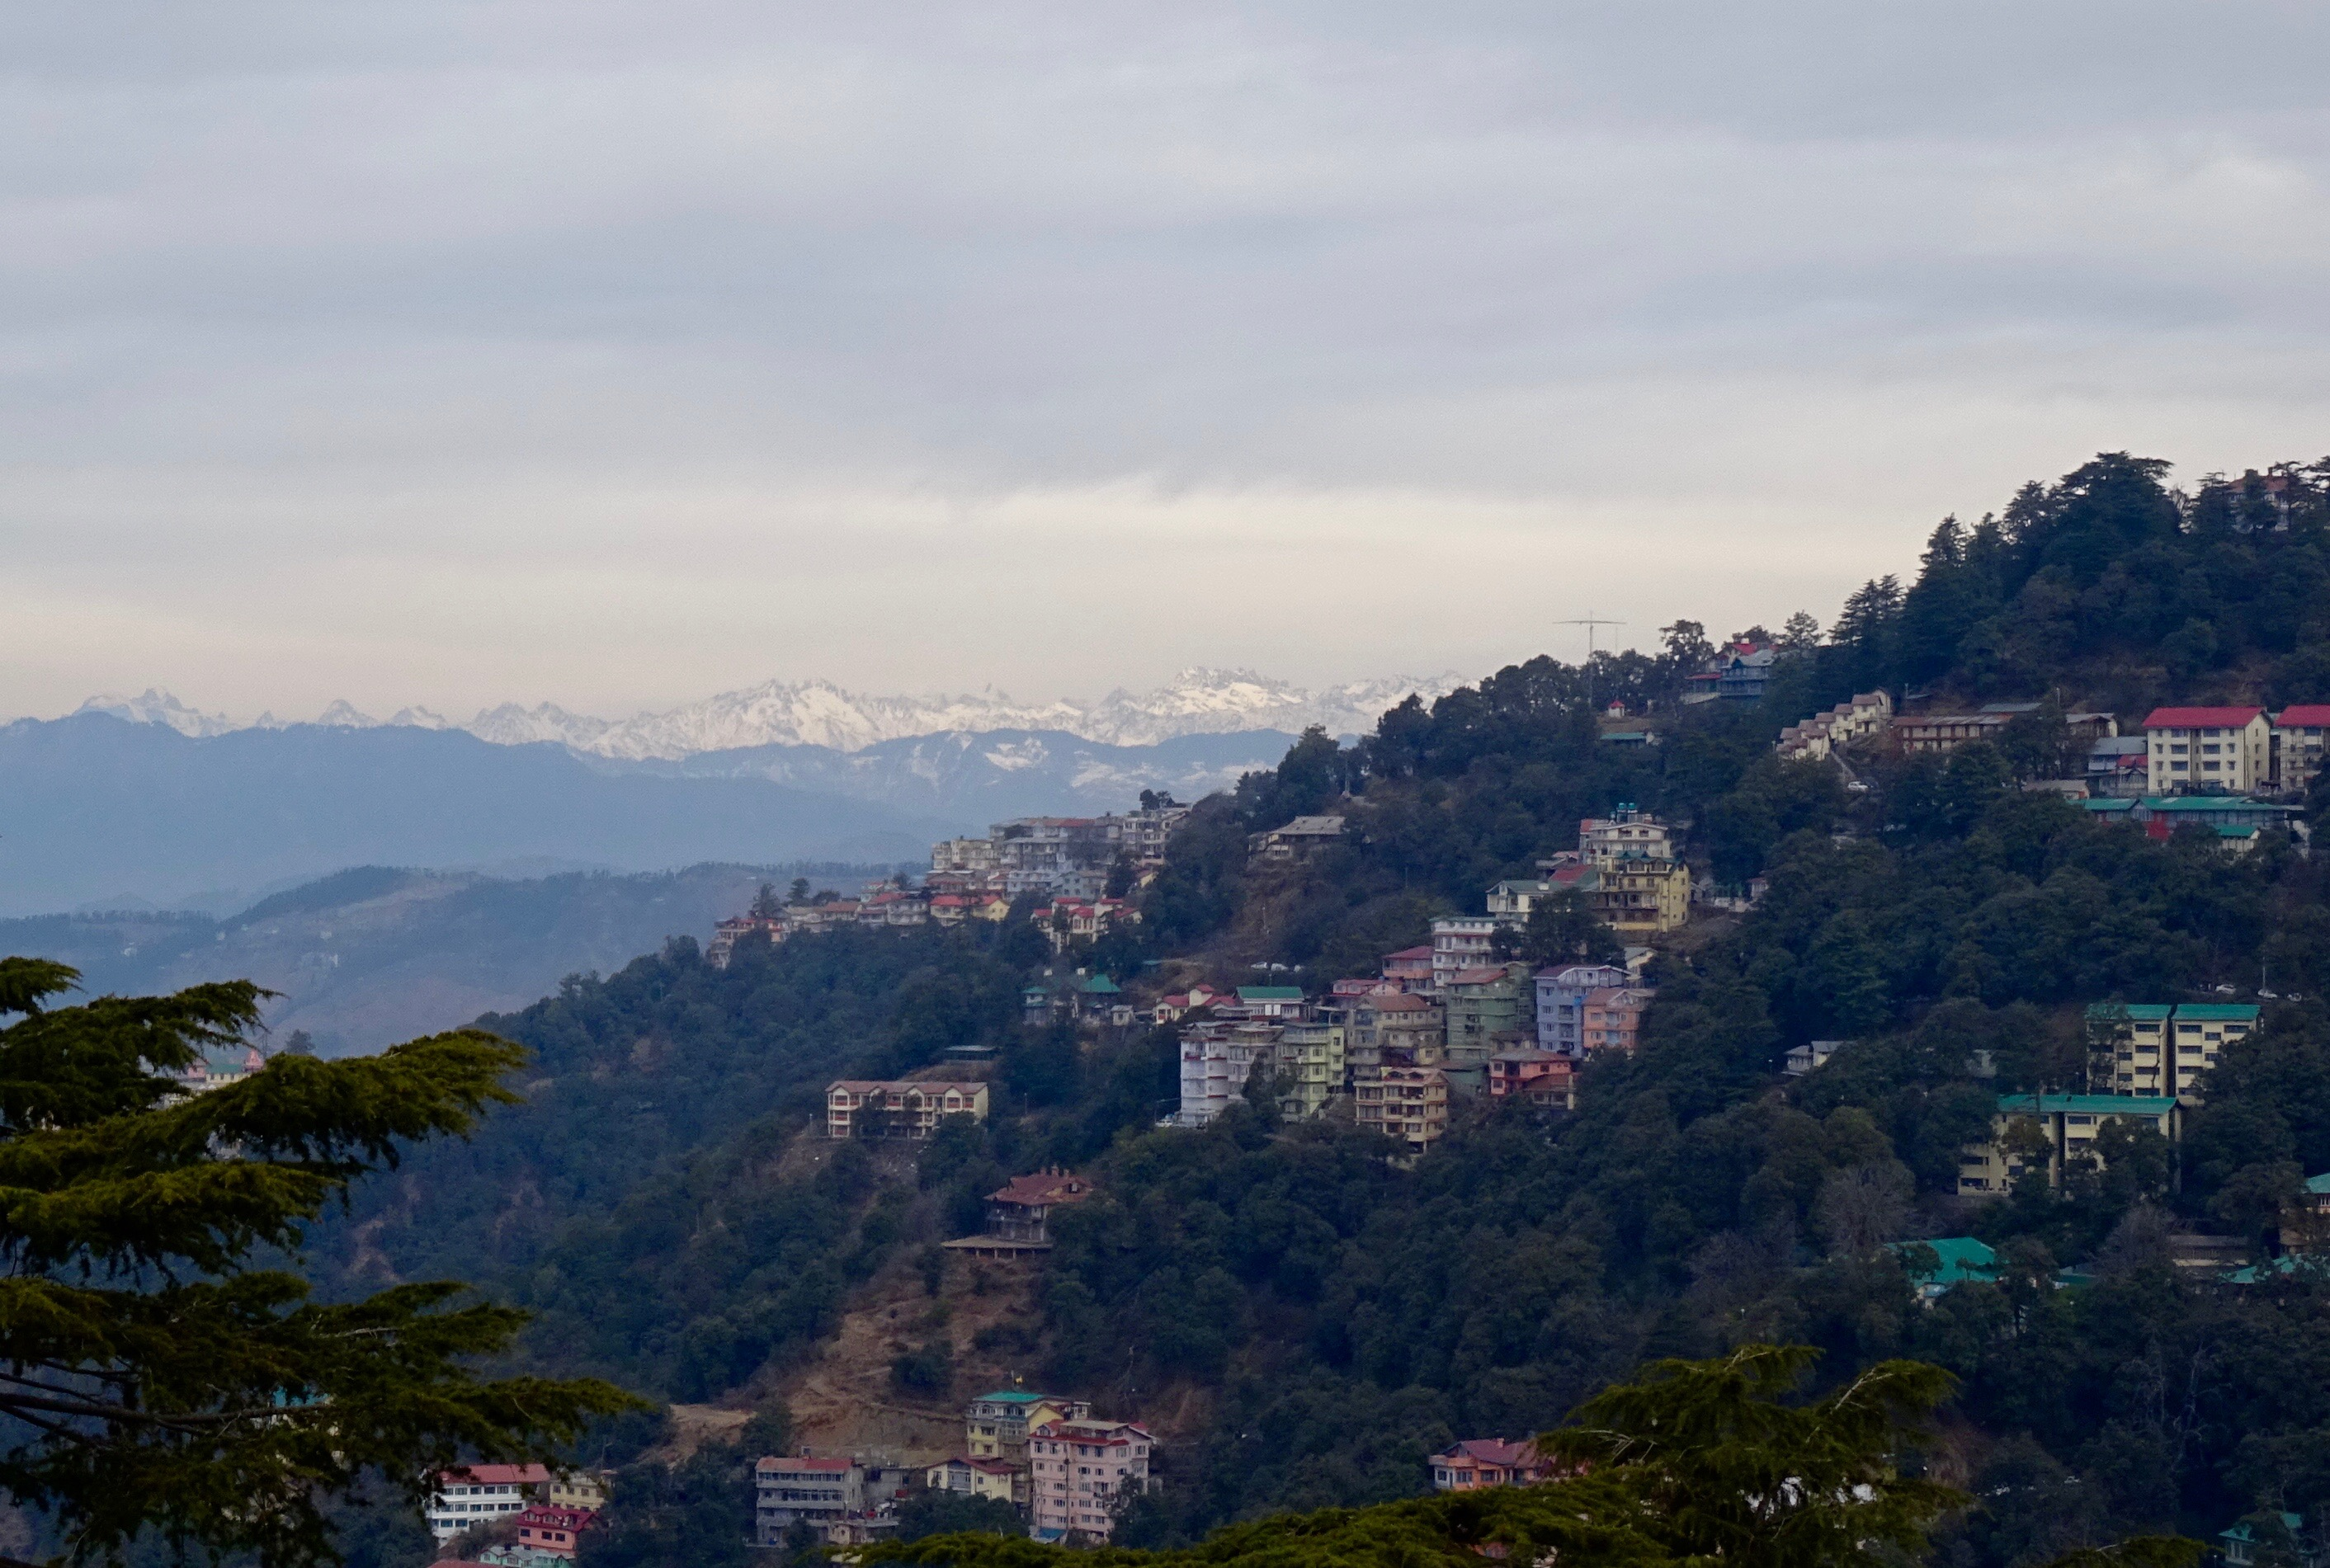 The view of the mountains from Shimla